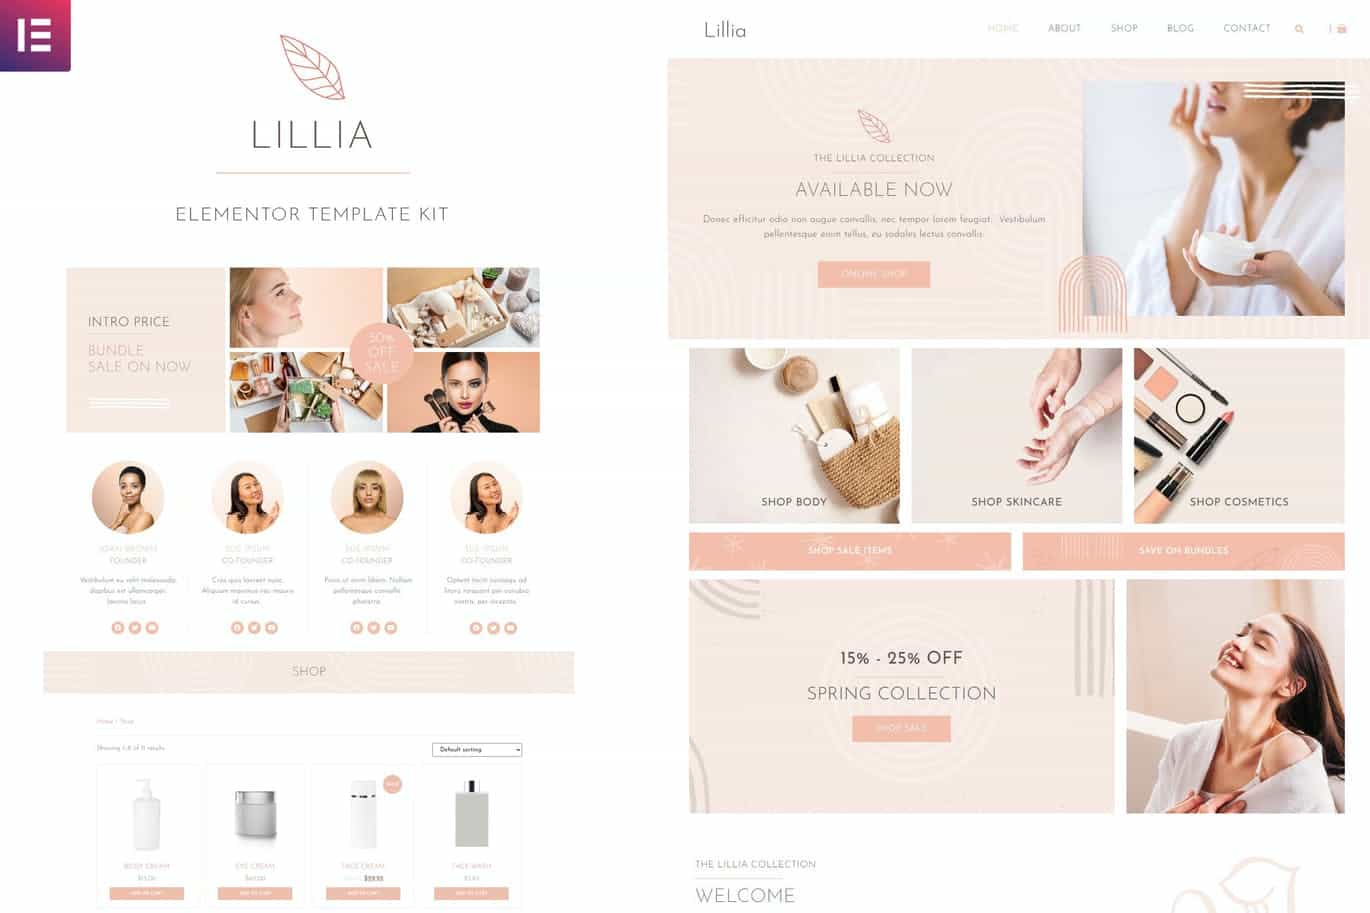 Elementor Pro模板-Lillia – 美容和护肤 Elementor Template Kit